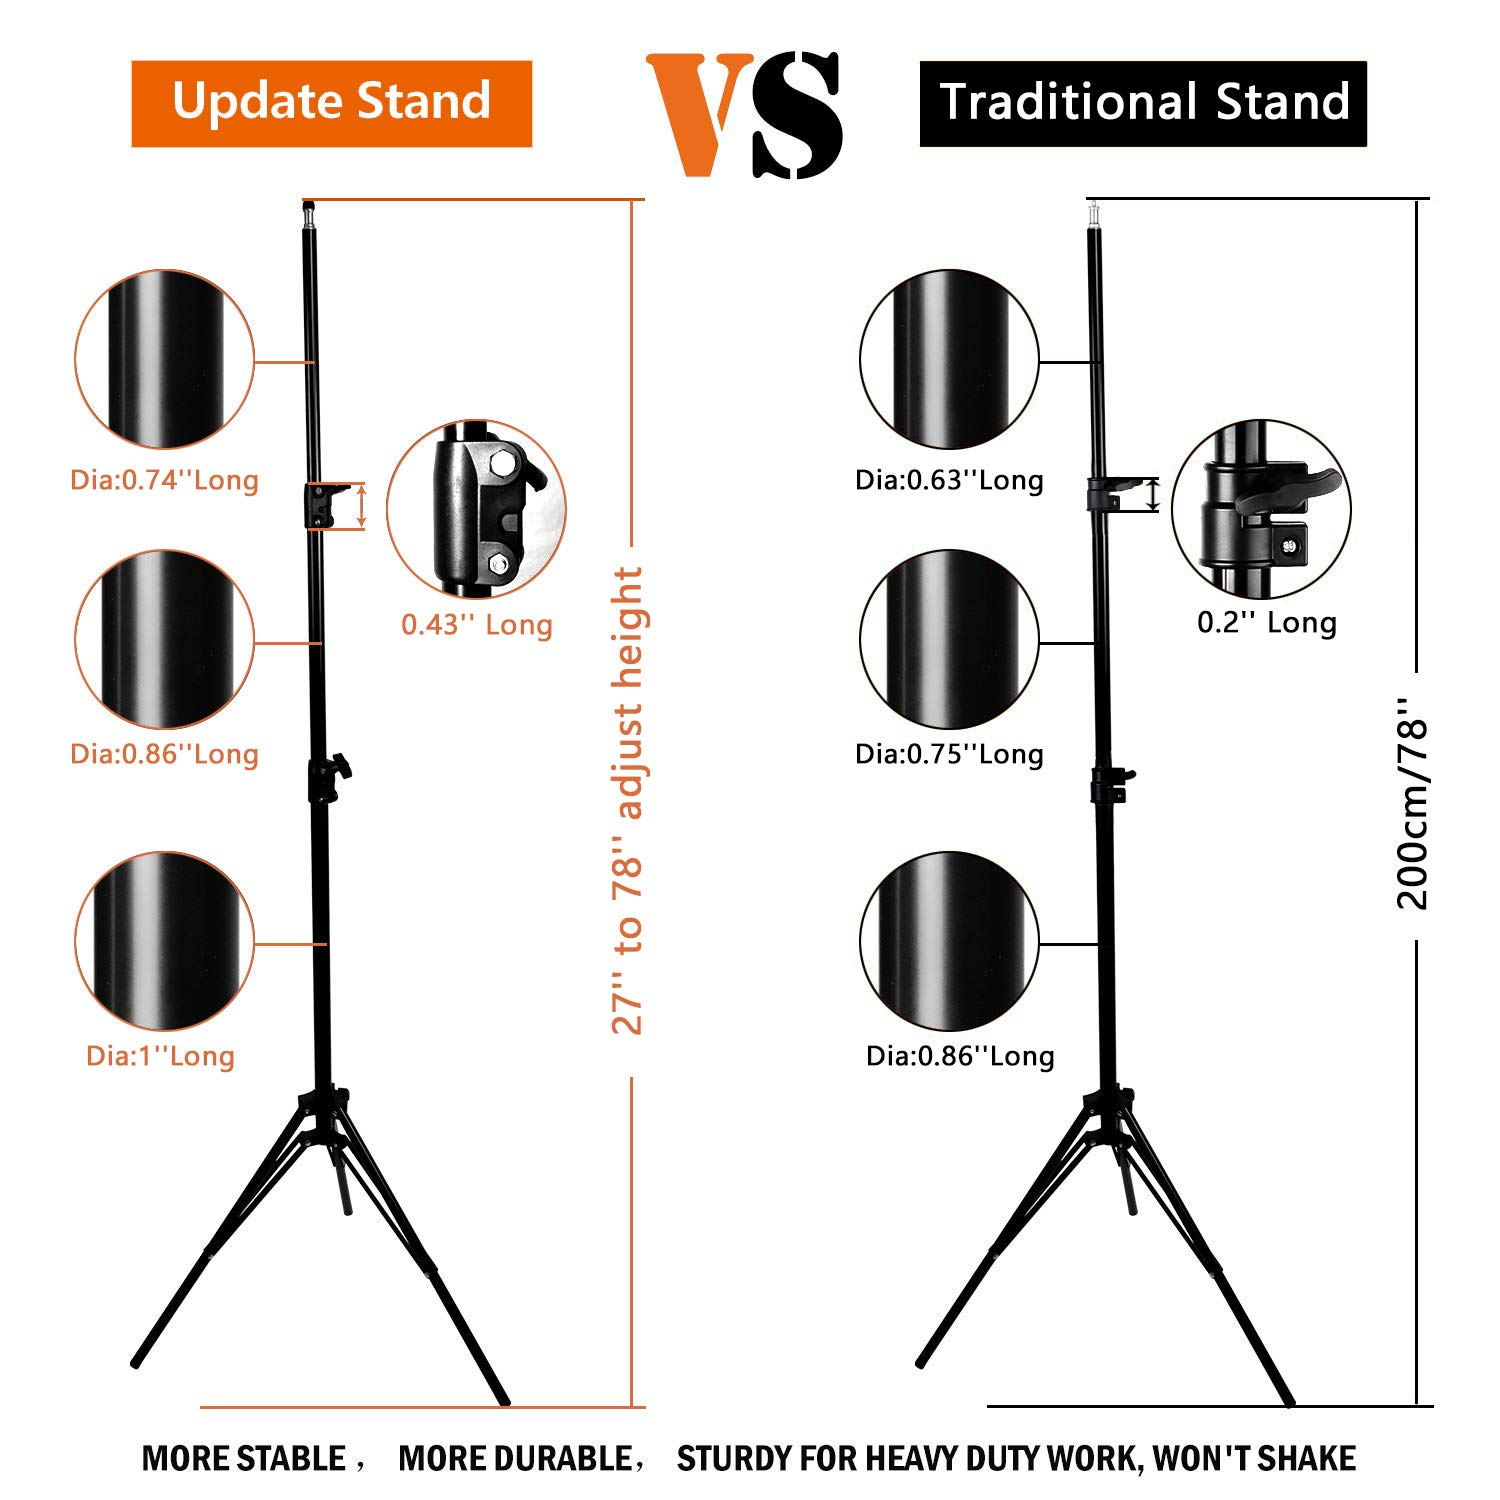 MOUNTDOG Upgraded 6.5 Ft/ 200CM / 78inch Photography Tripod Light Stand Aluminum Alloy Photographic Stand for Studio Reflector Softbox Umbrellas-6.5ftX2 ¡­ by MOUNTDOG (Image #2)